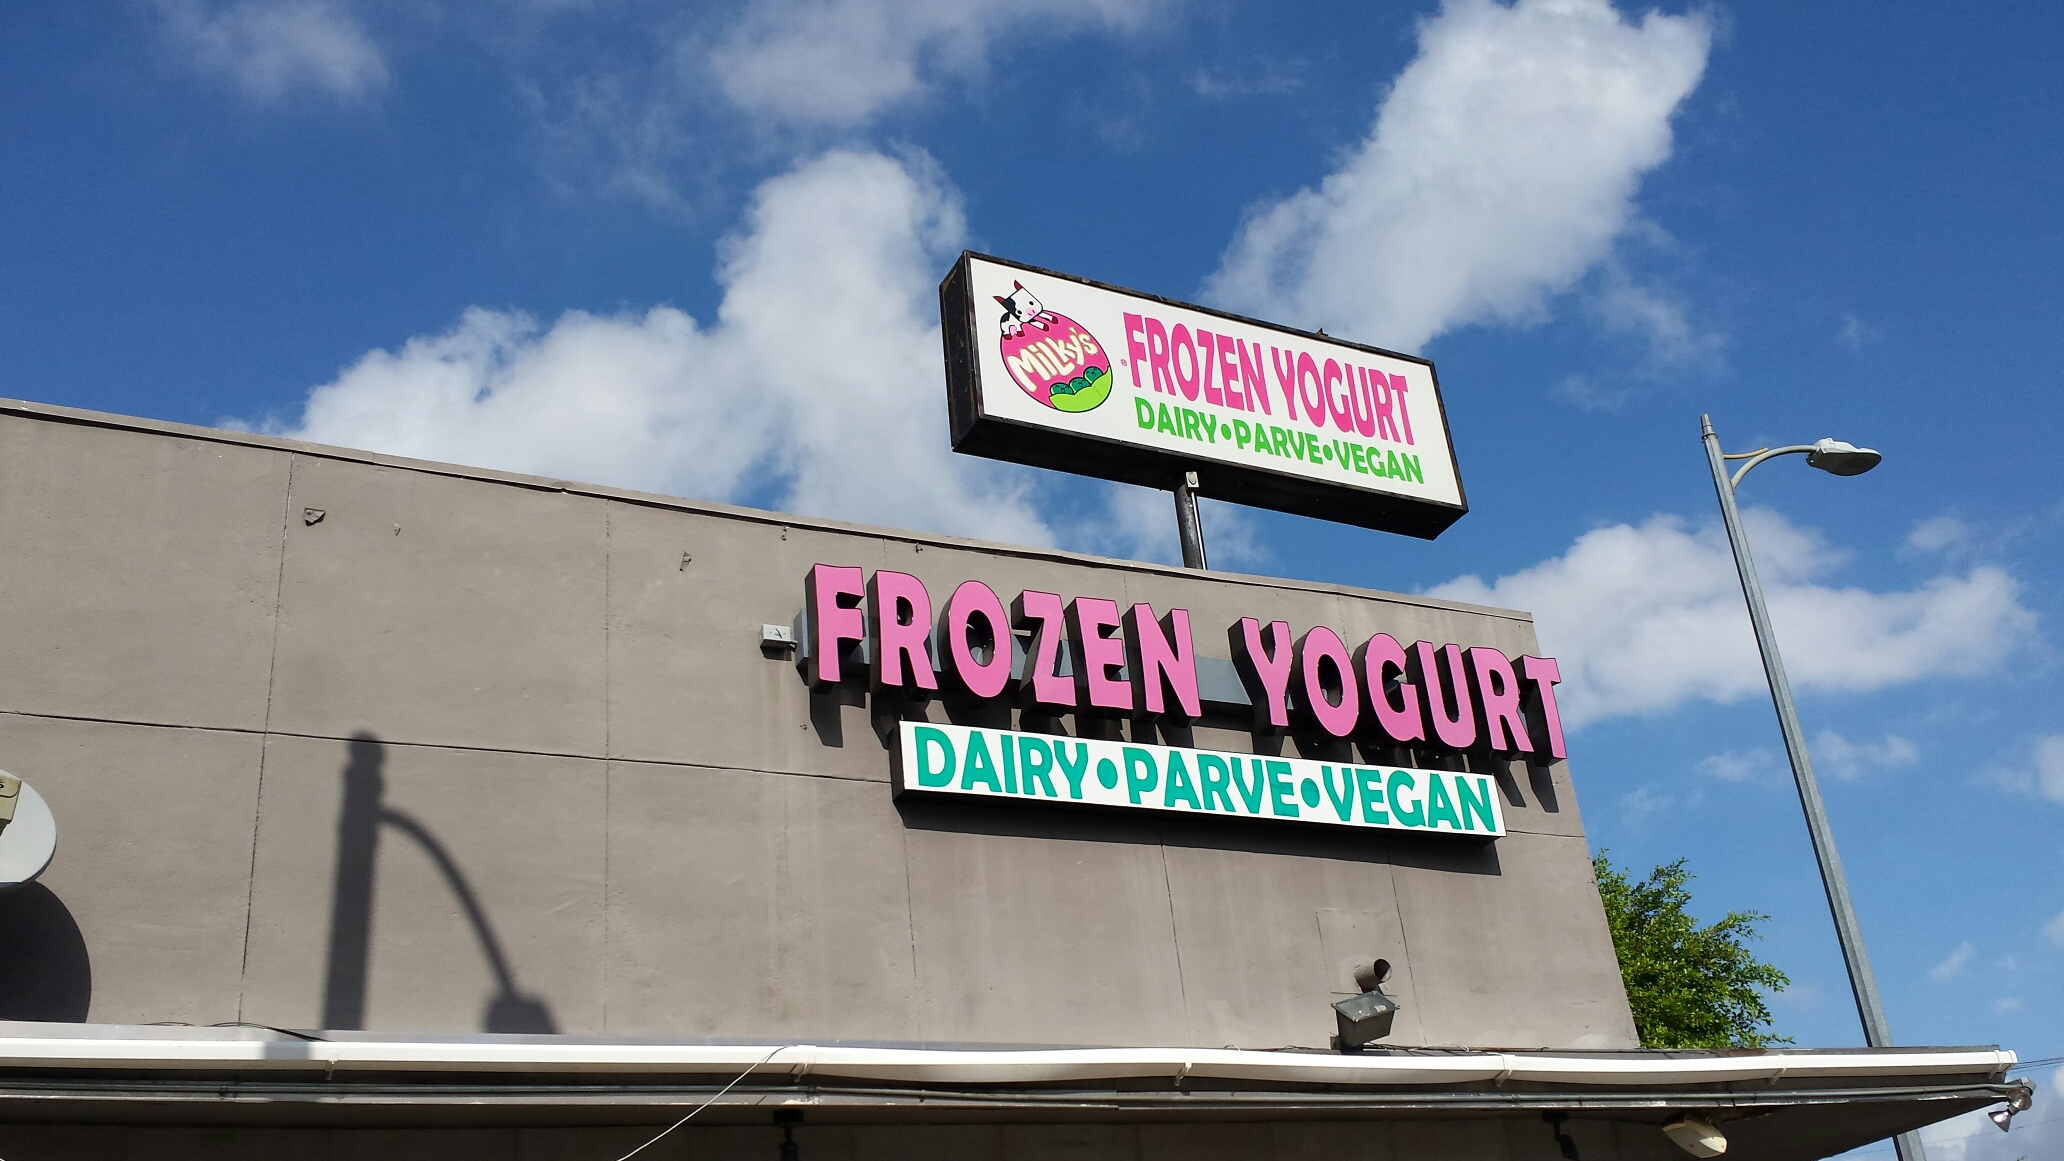 Cool down with frozen yogurt near our laundromat